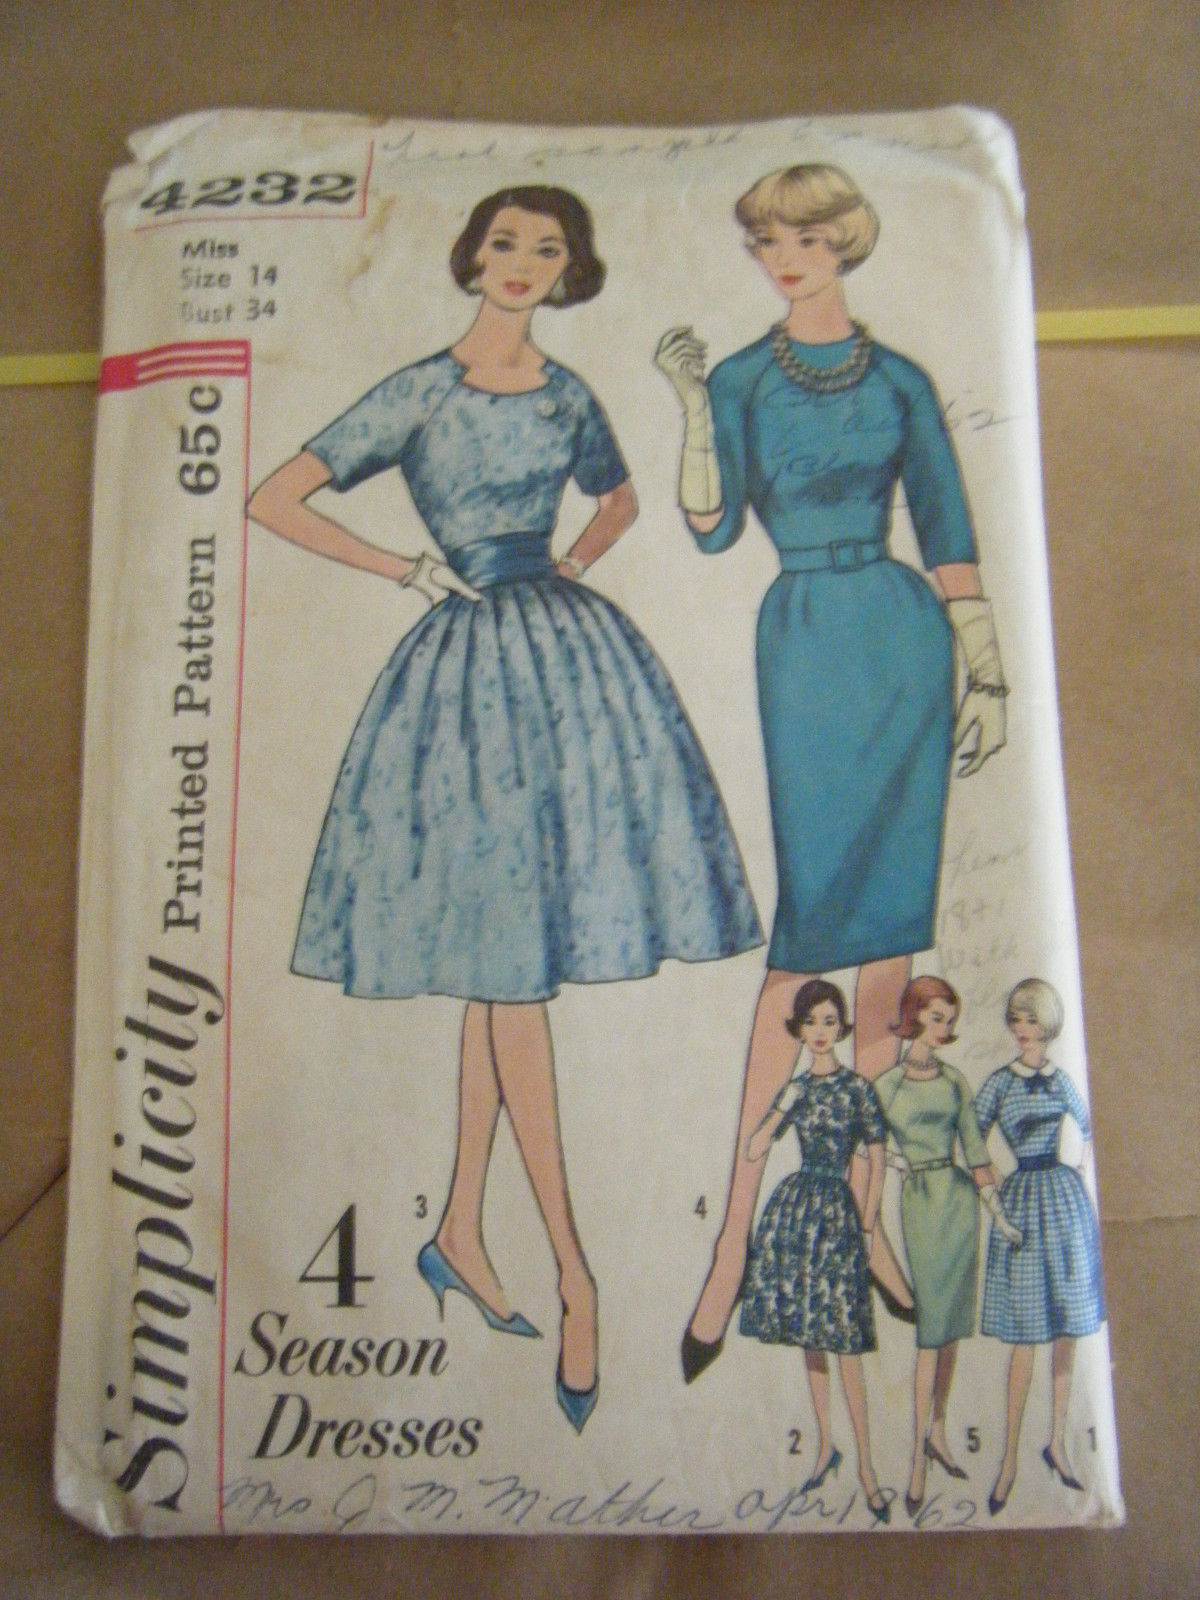 Primary image for Vintage 1960's Simplicity 4232 Misses Dresses Pattern - Size 14 Bust 34